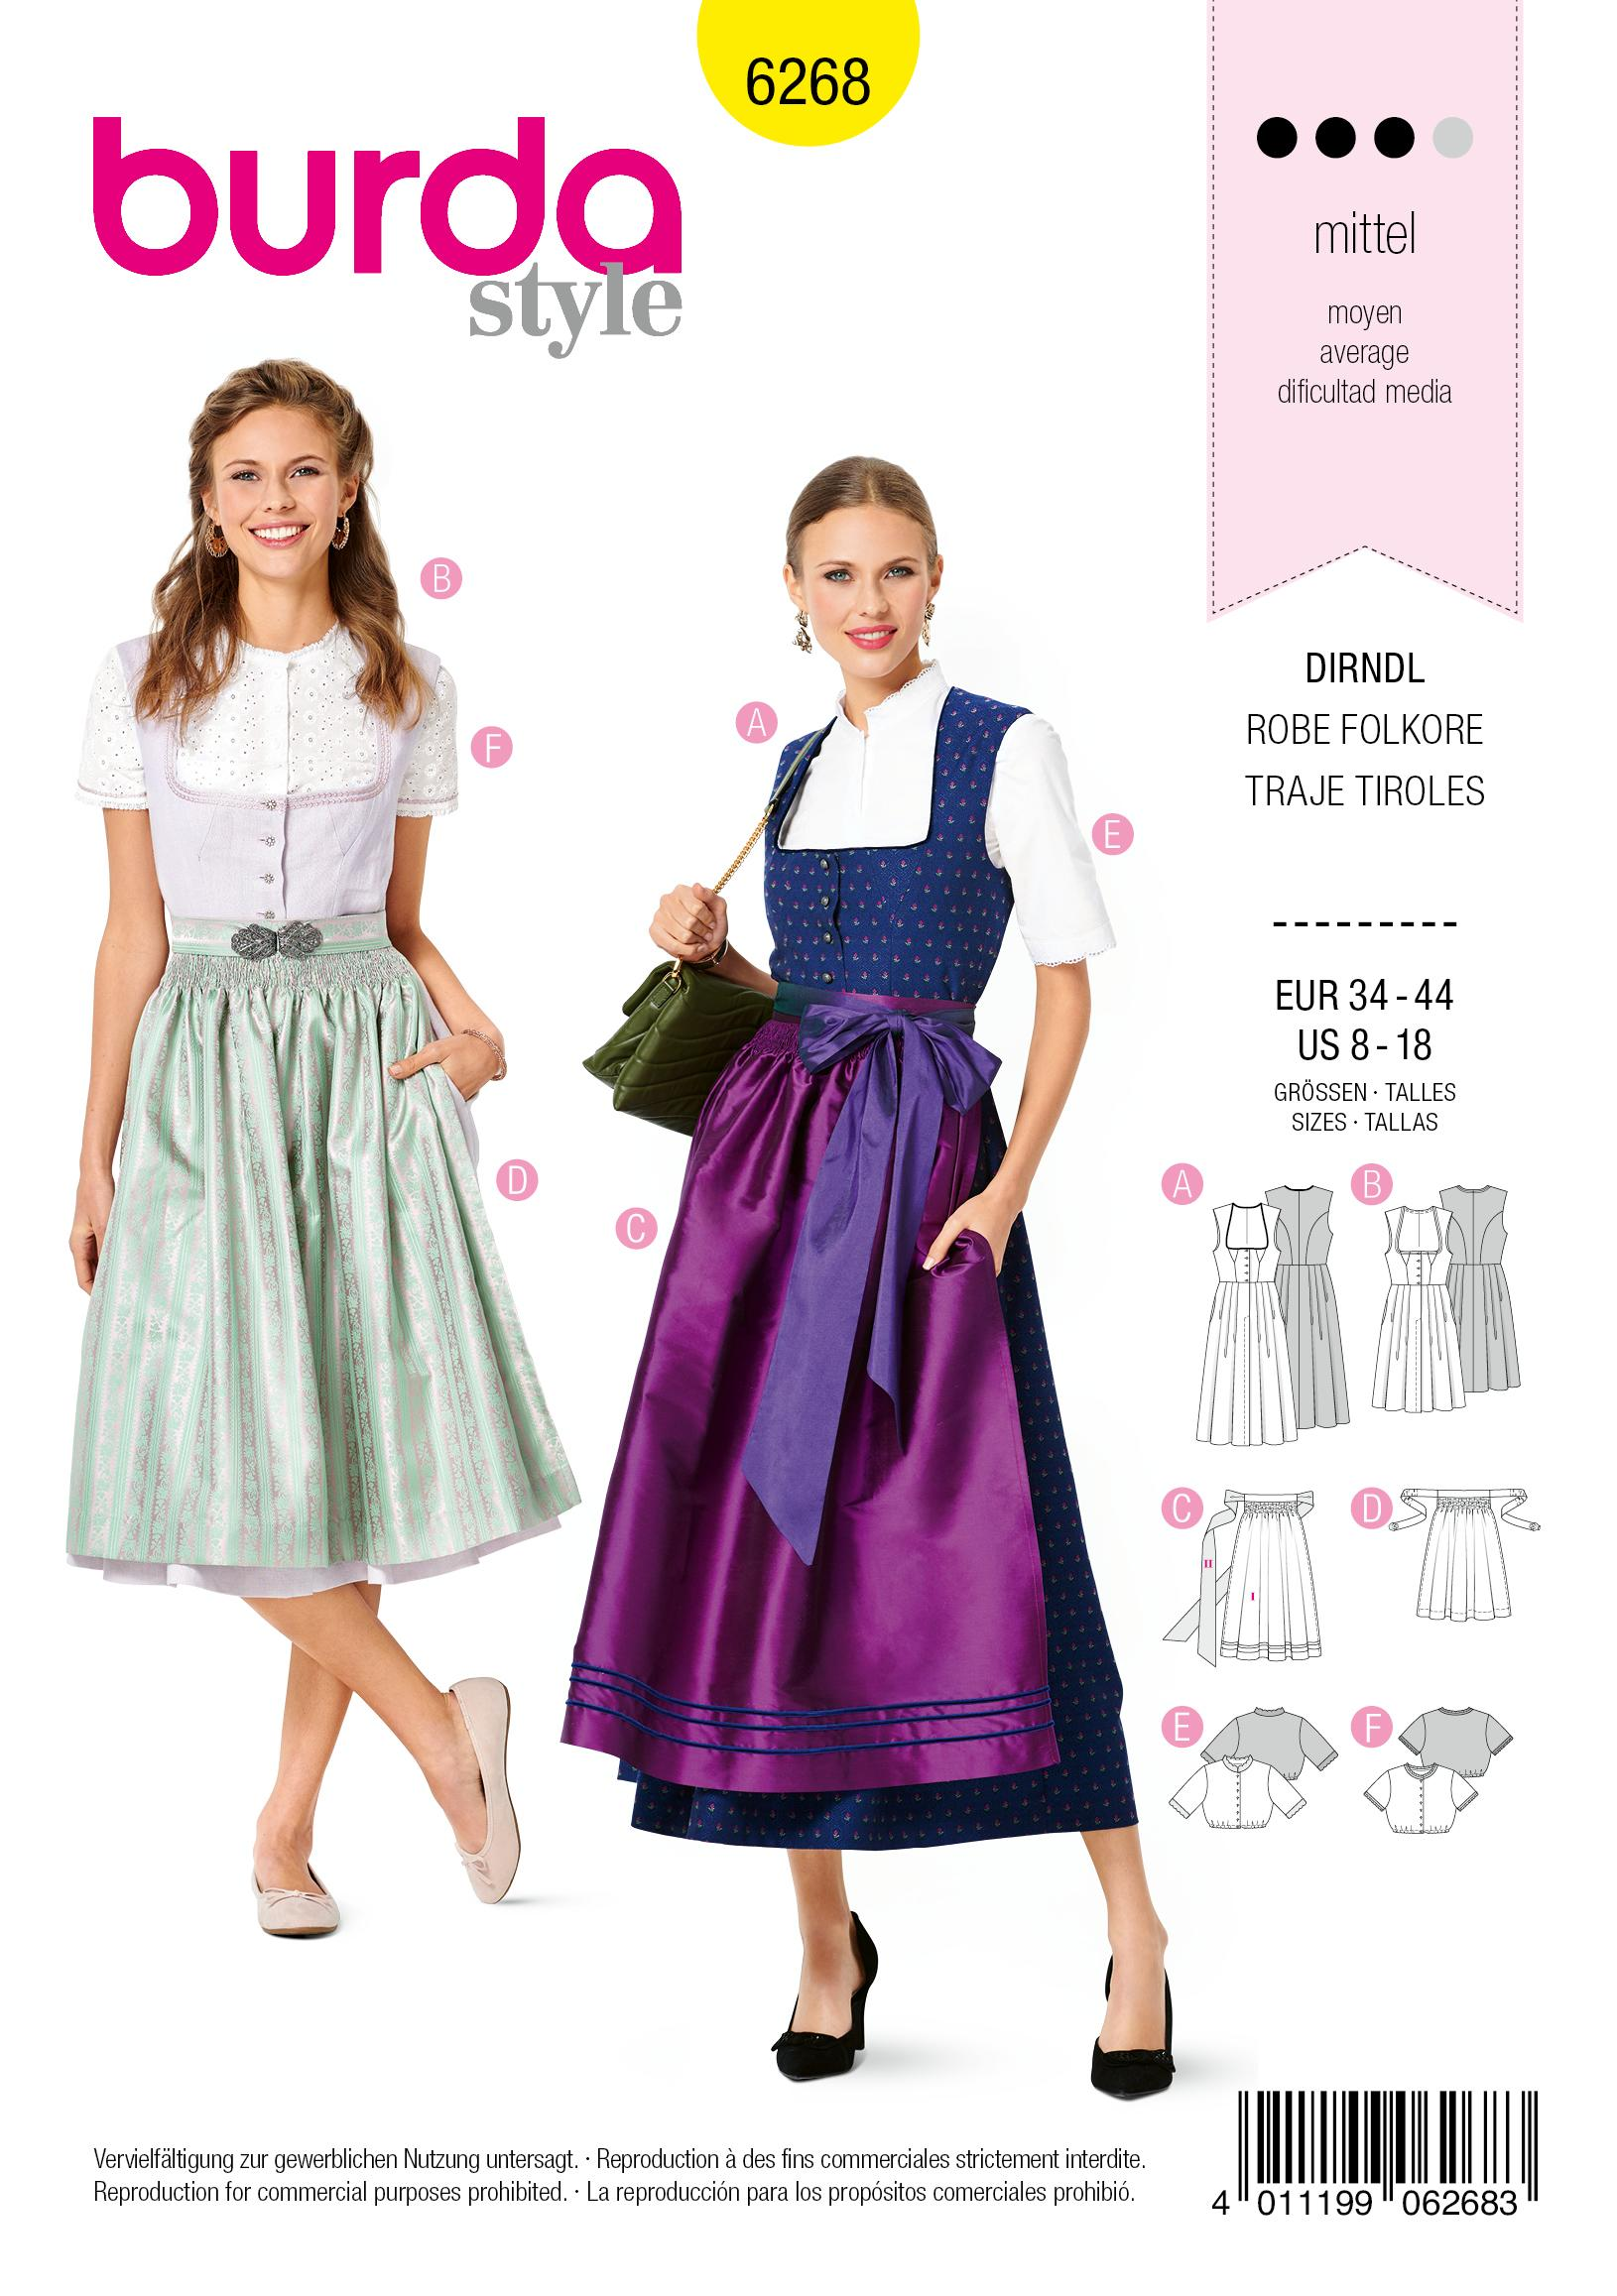 Burda 6268 Misses' pinafore Dress in Dirndl-Style, Blouse and Apron